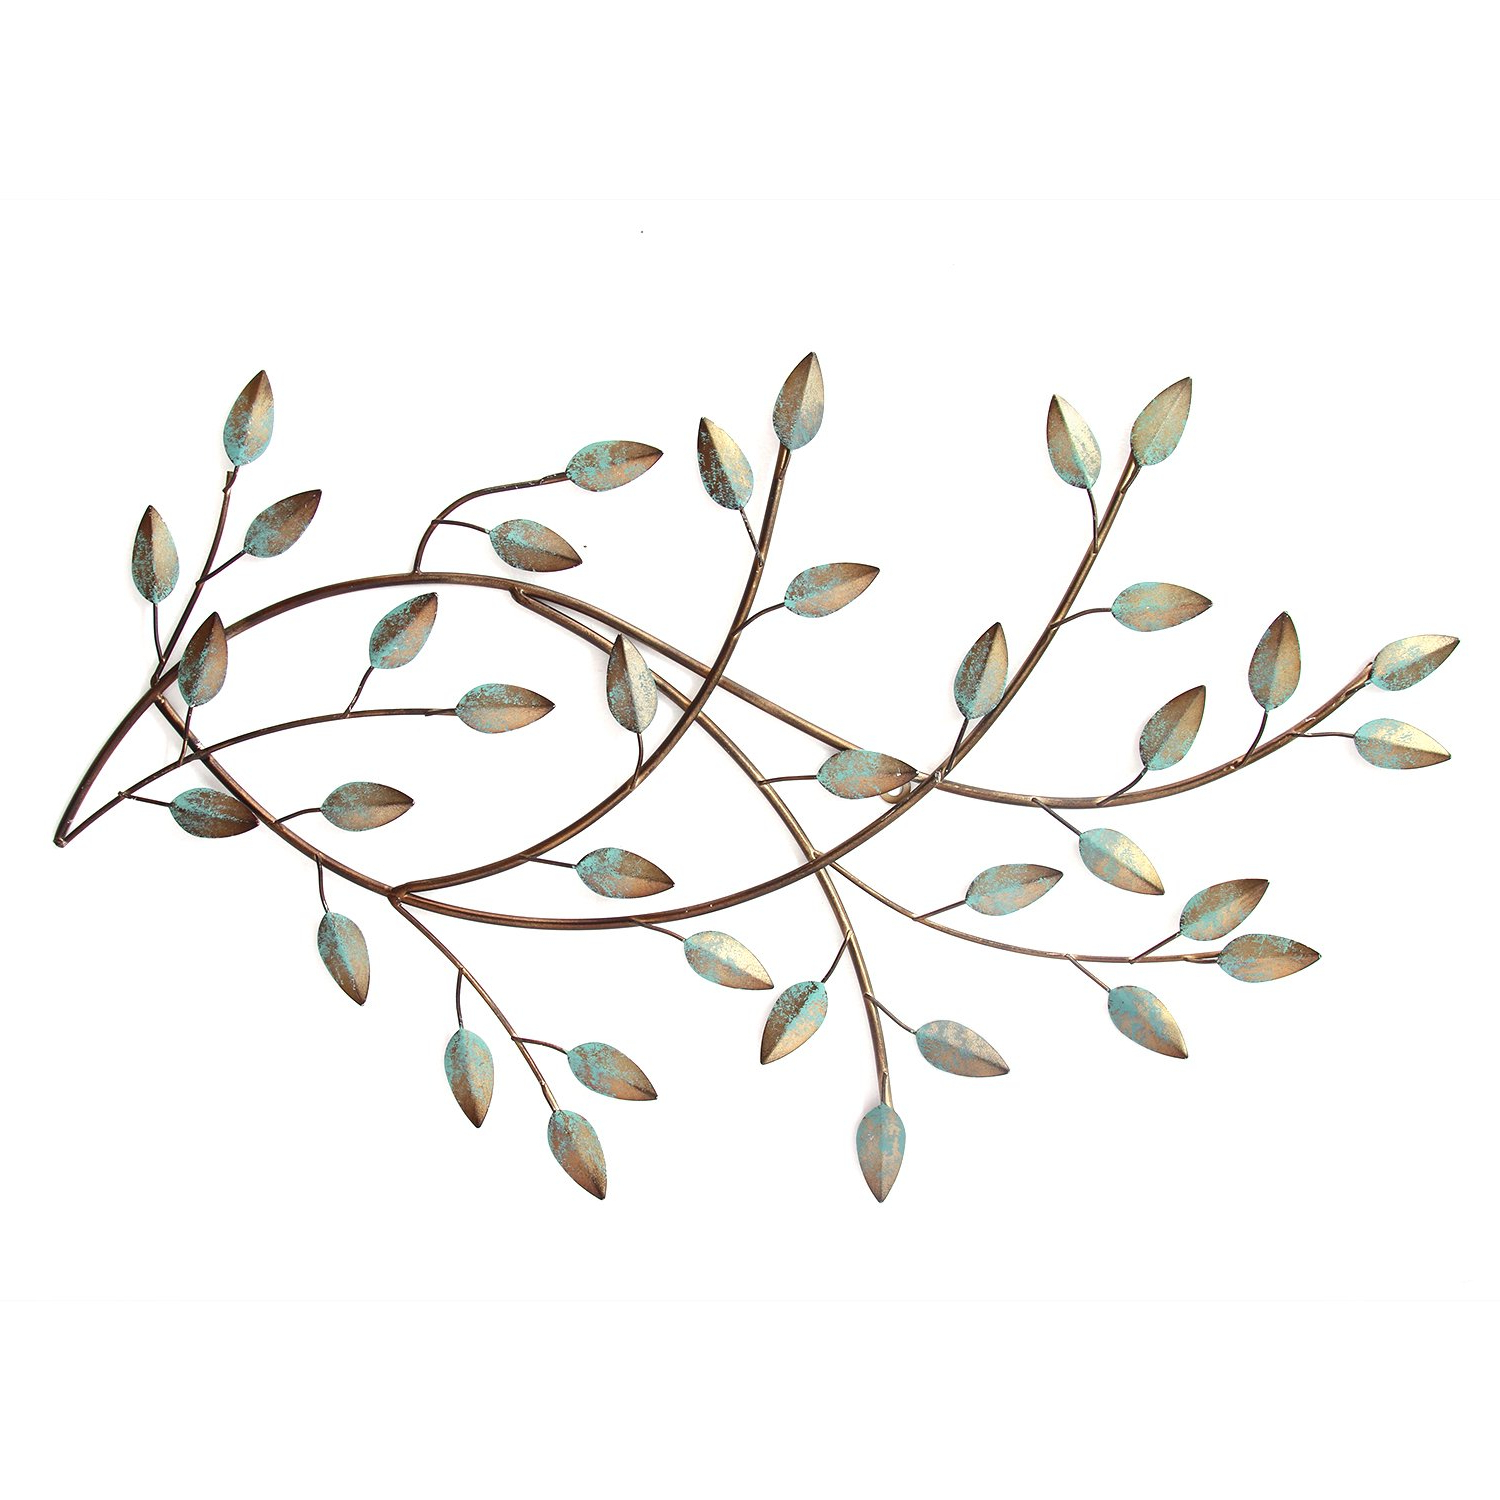 Newest Amazon: Stratton Home Decor Patina Blowing Leaves Wall Decor Inside Blowing Leaves Wall Decor (View 2 of 20)